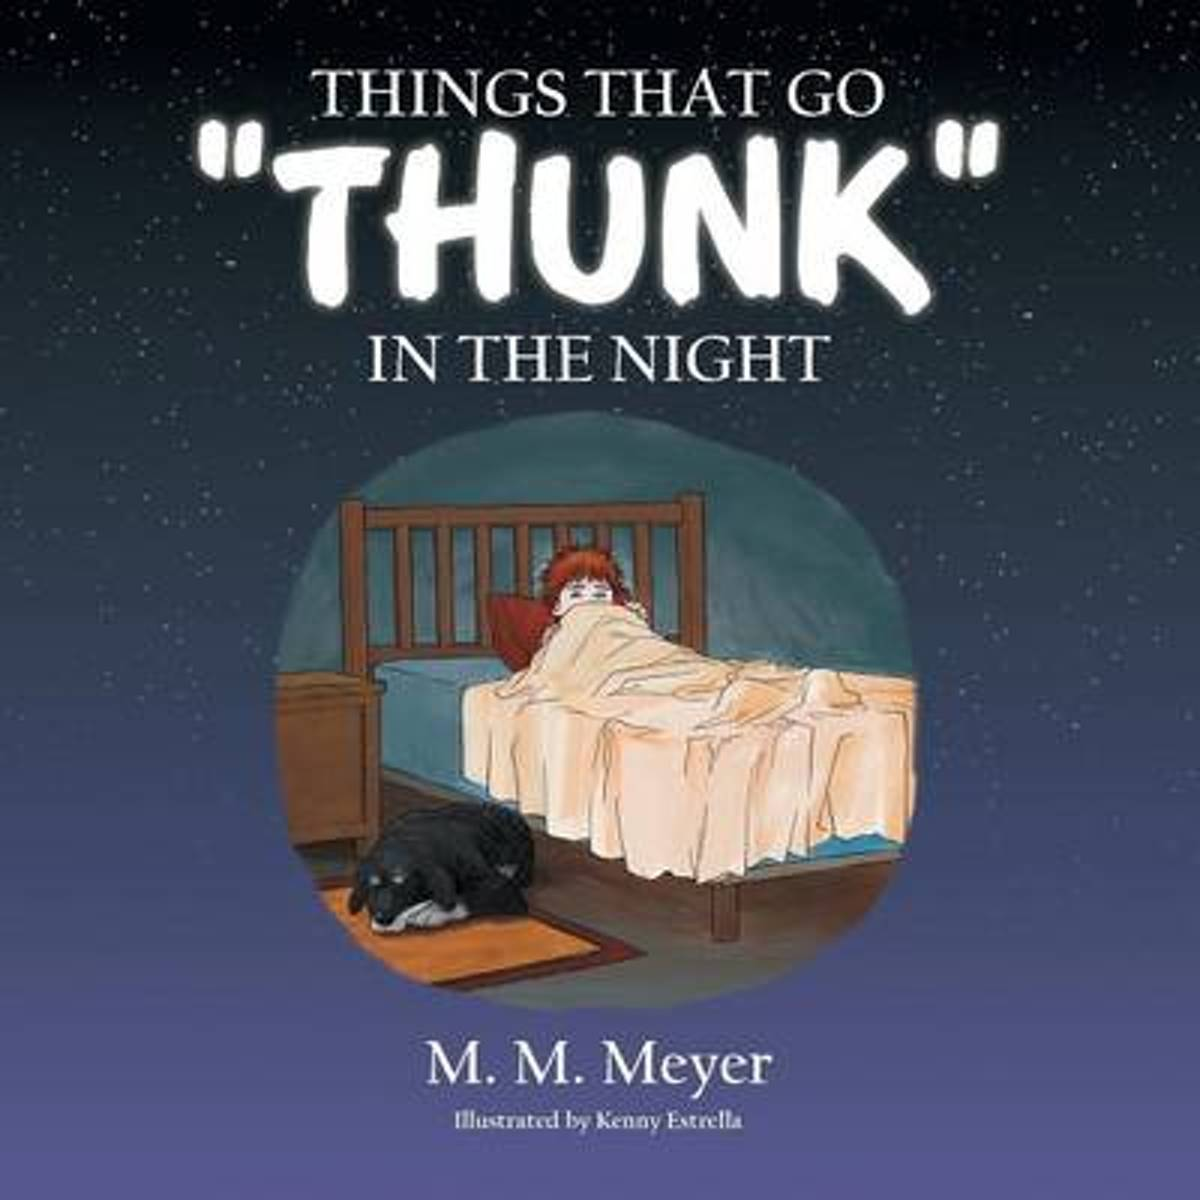 Things That Go Thunk in the Night